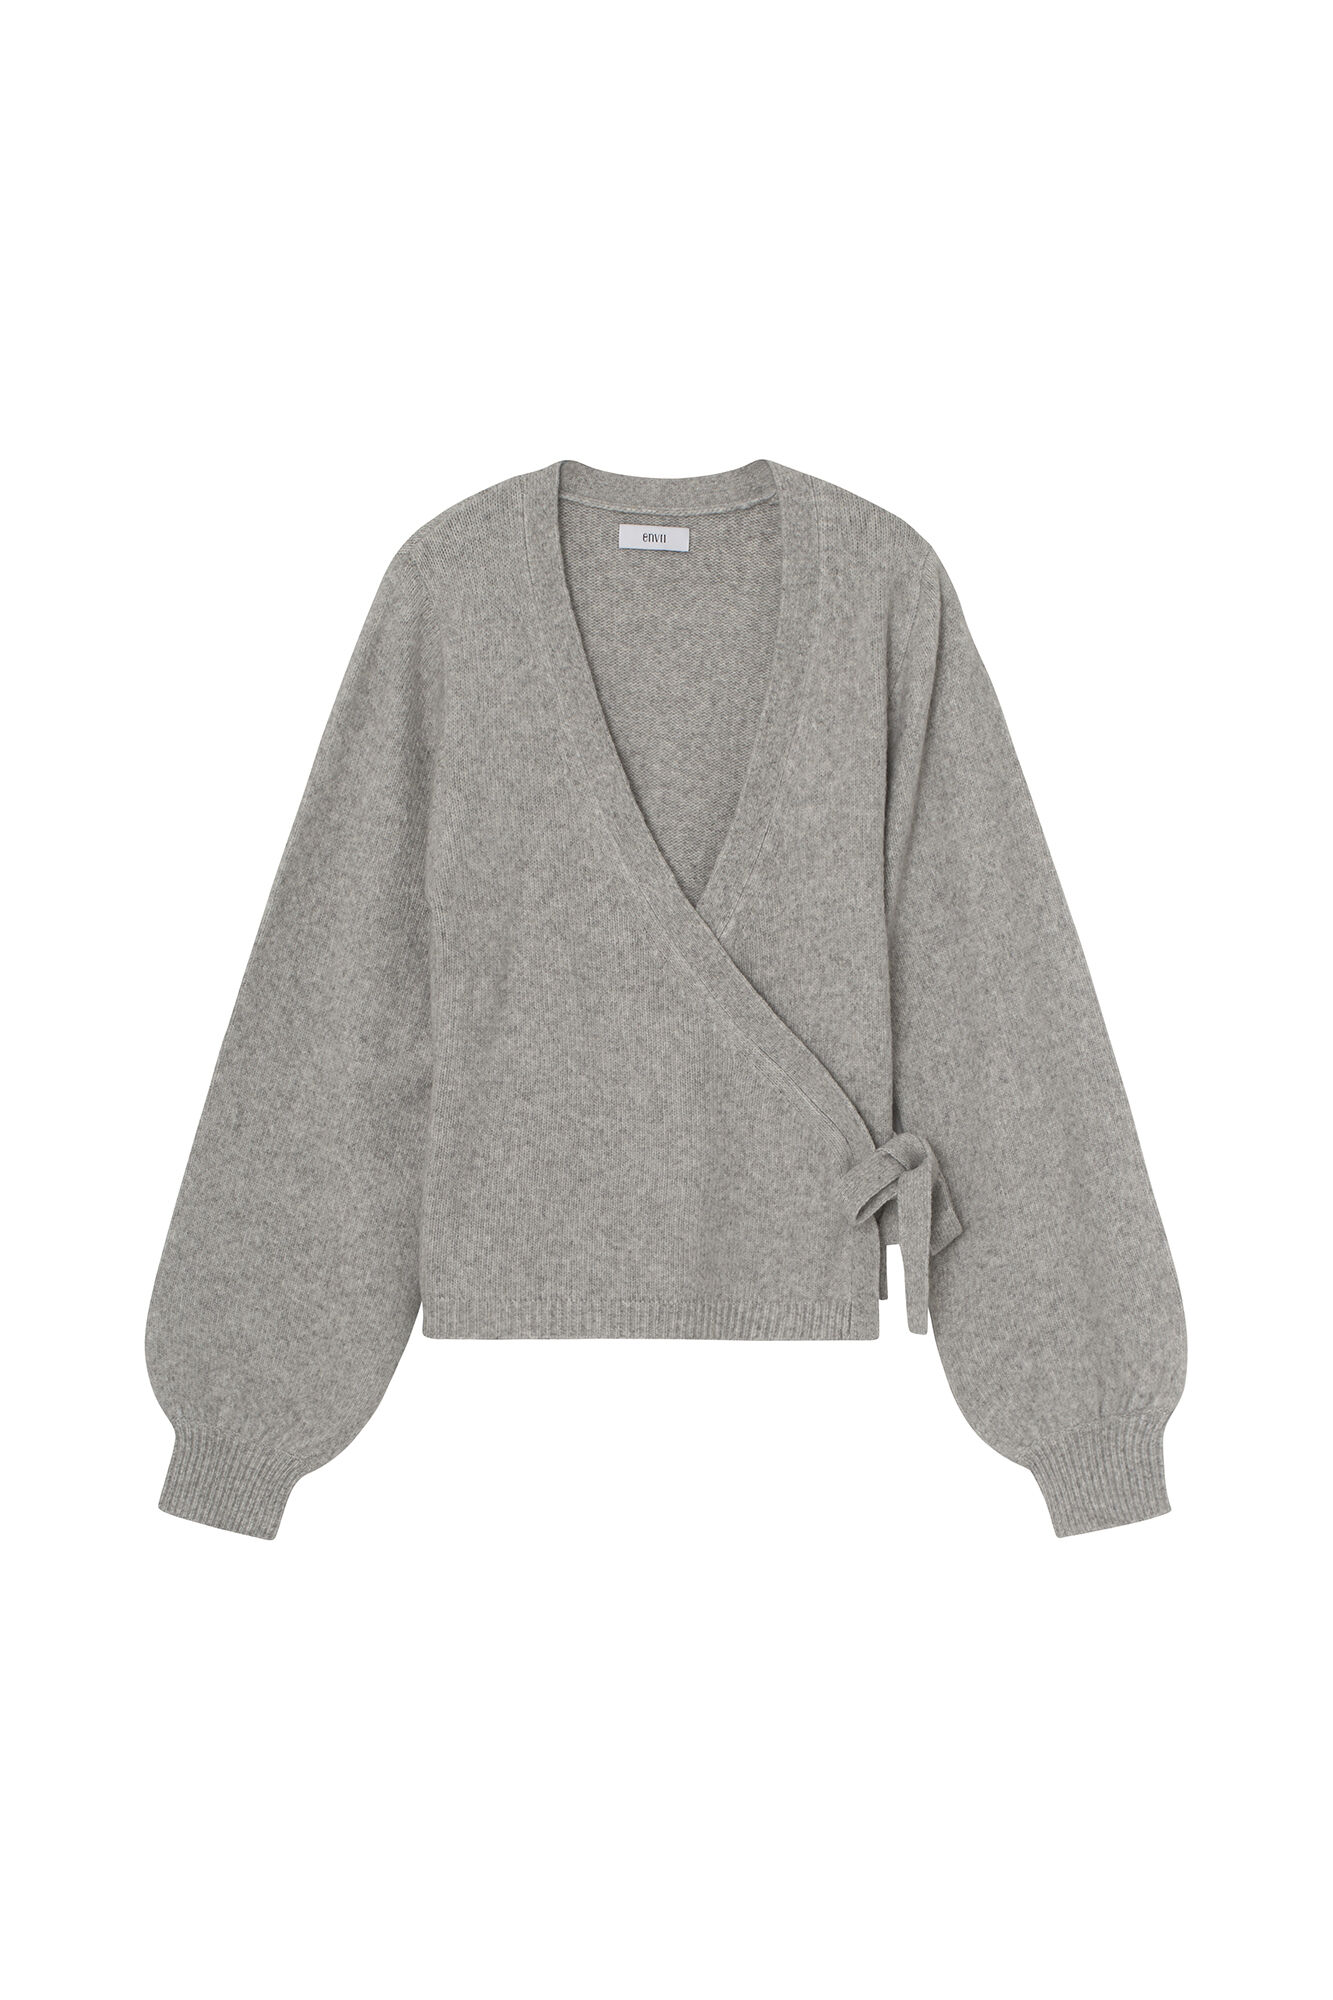 ENSOYA LS V-N KNIT 5231, LIGHT GREY MEL.